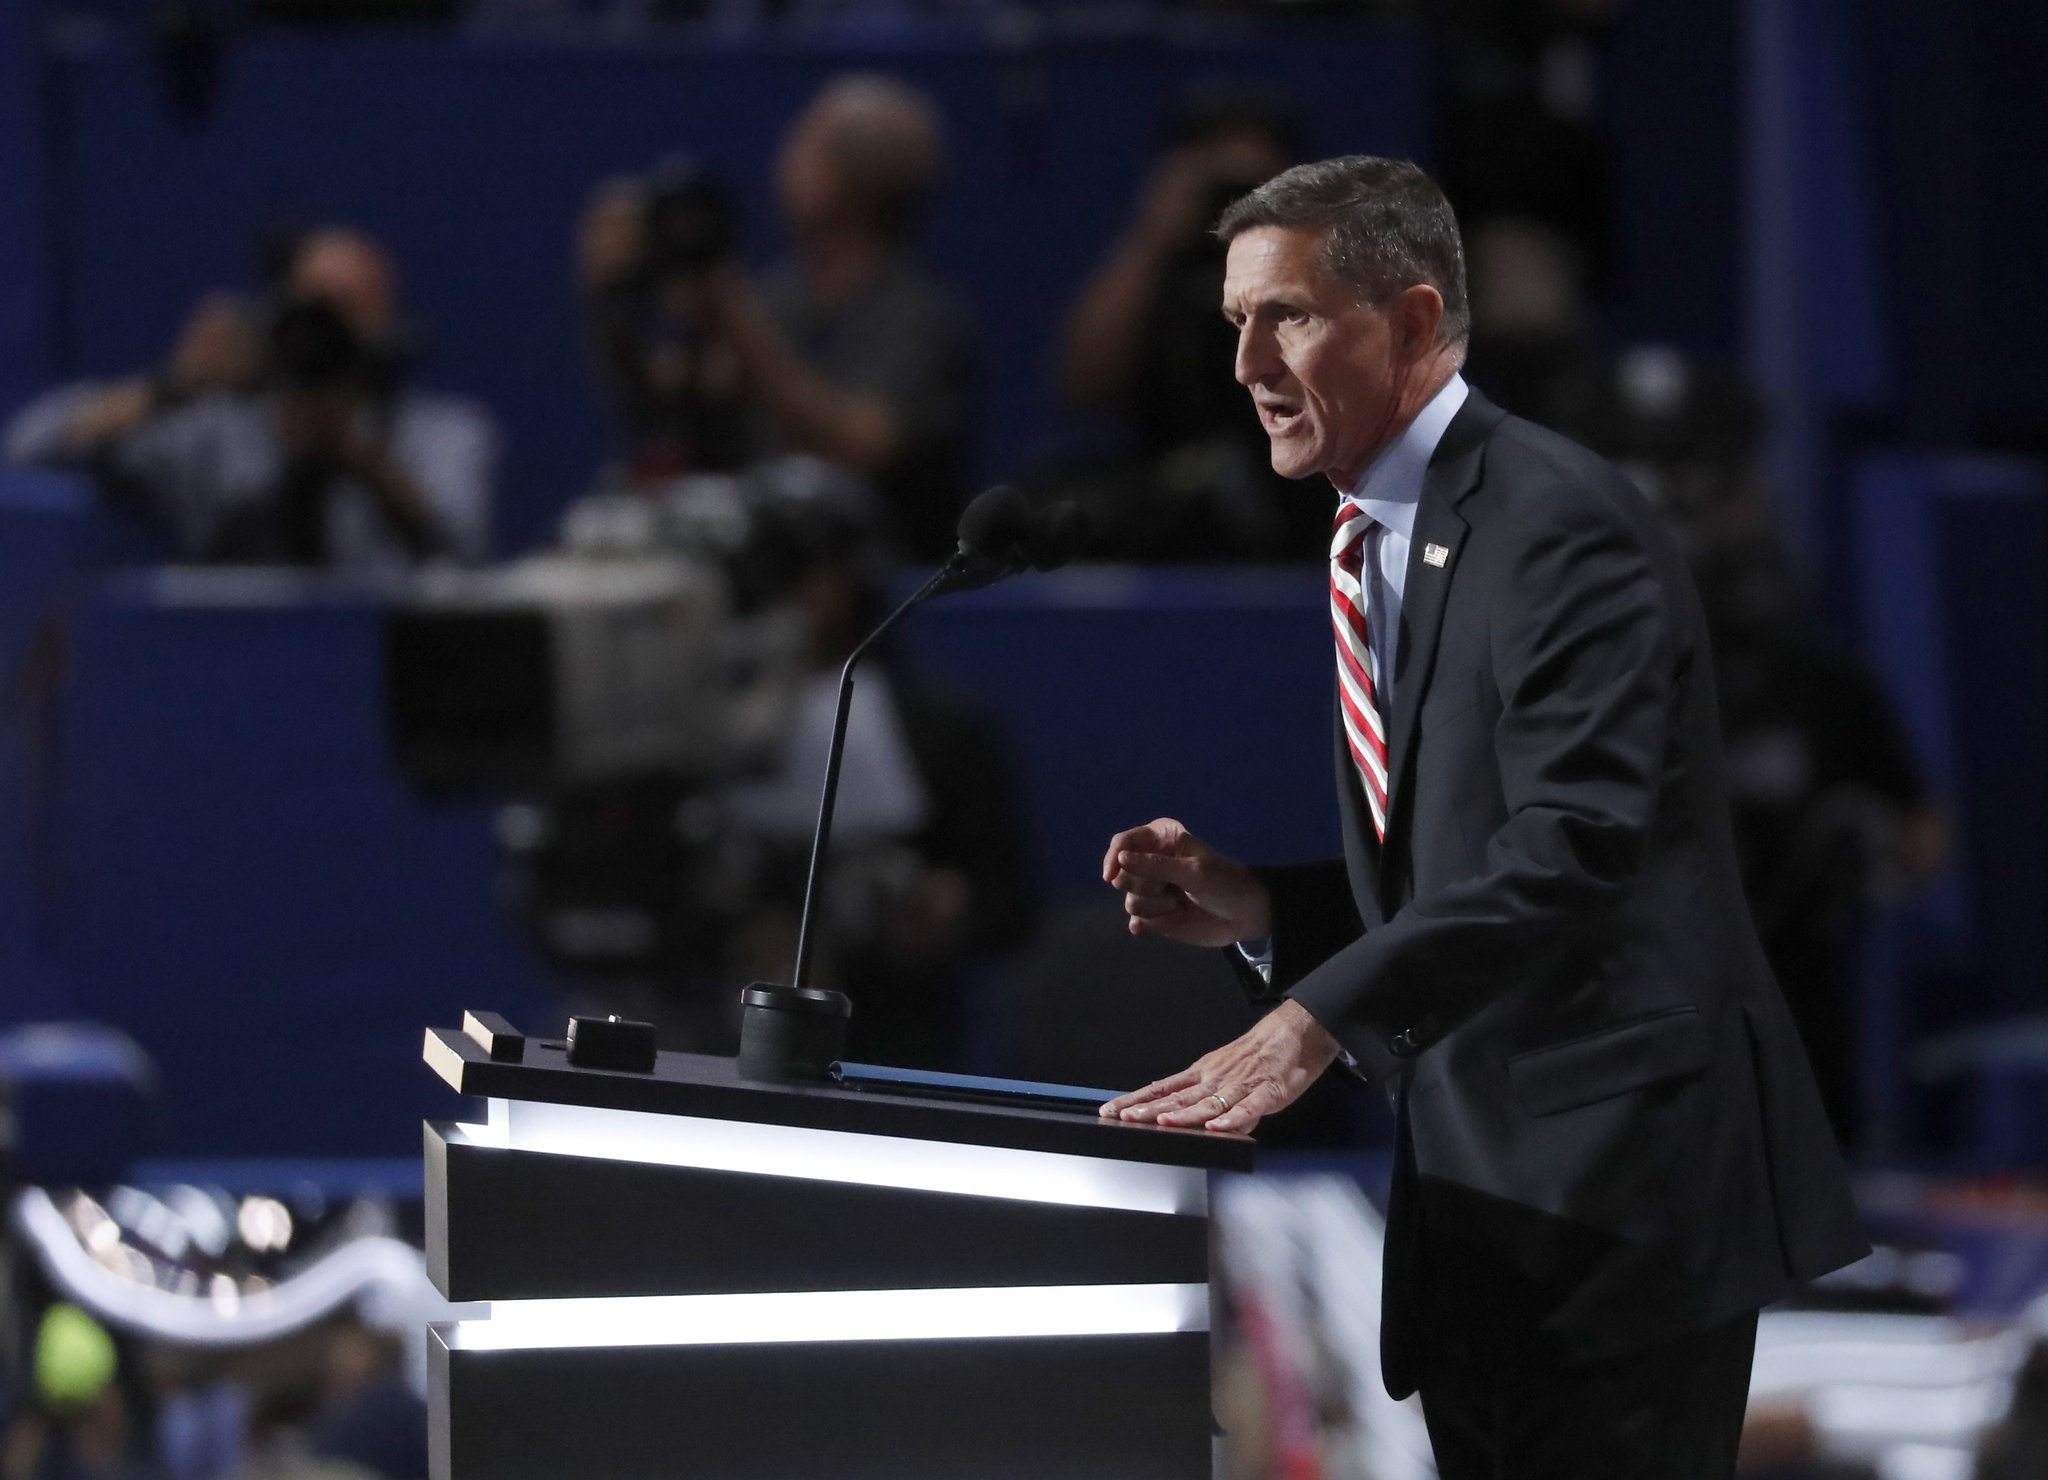 Michael Flynn Rnc >> GOP speakers lead chants of 'Lock her up!' at RNC. Did they cross a line?   cleveland.com